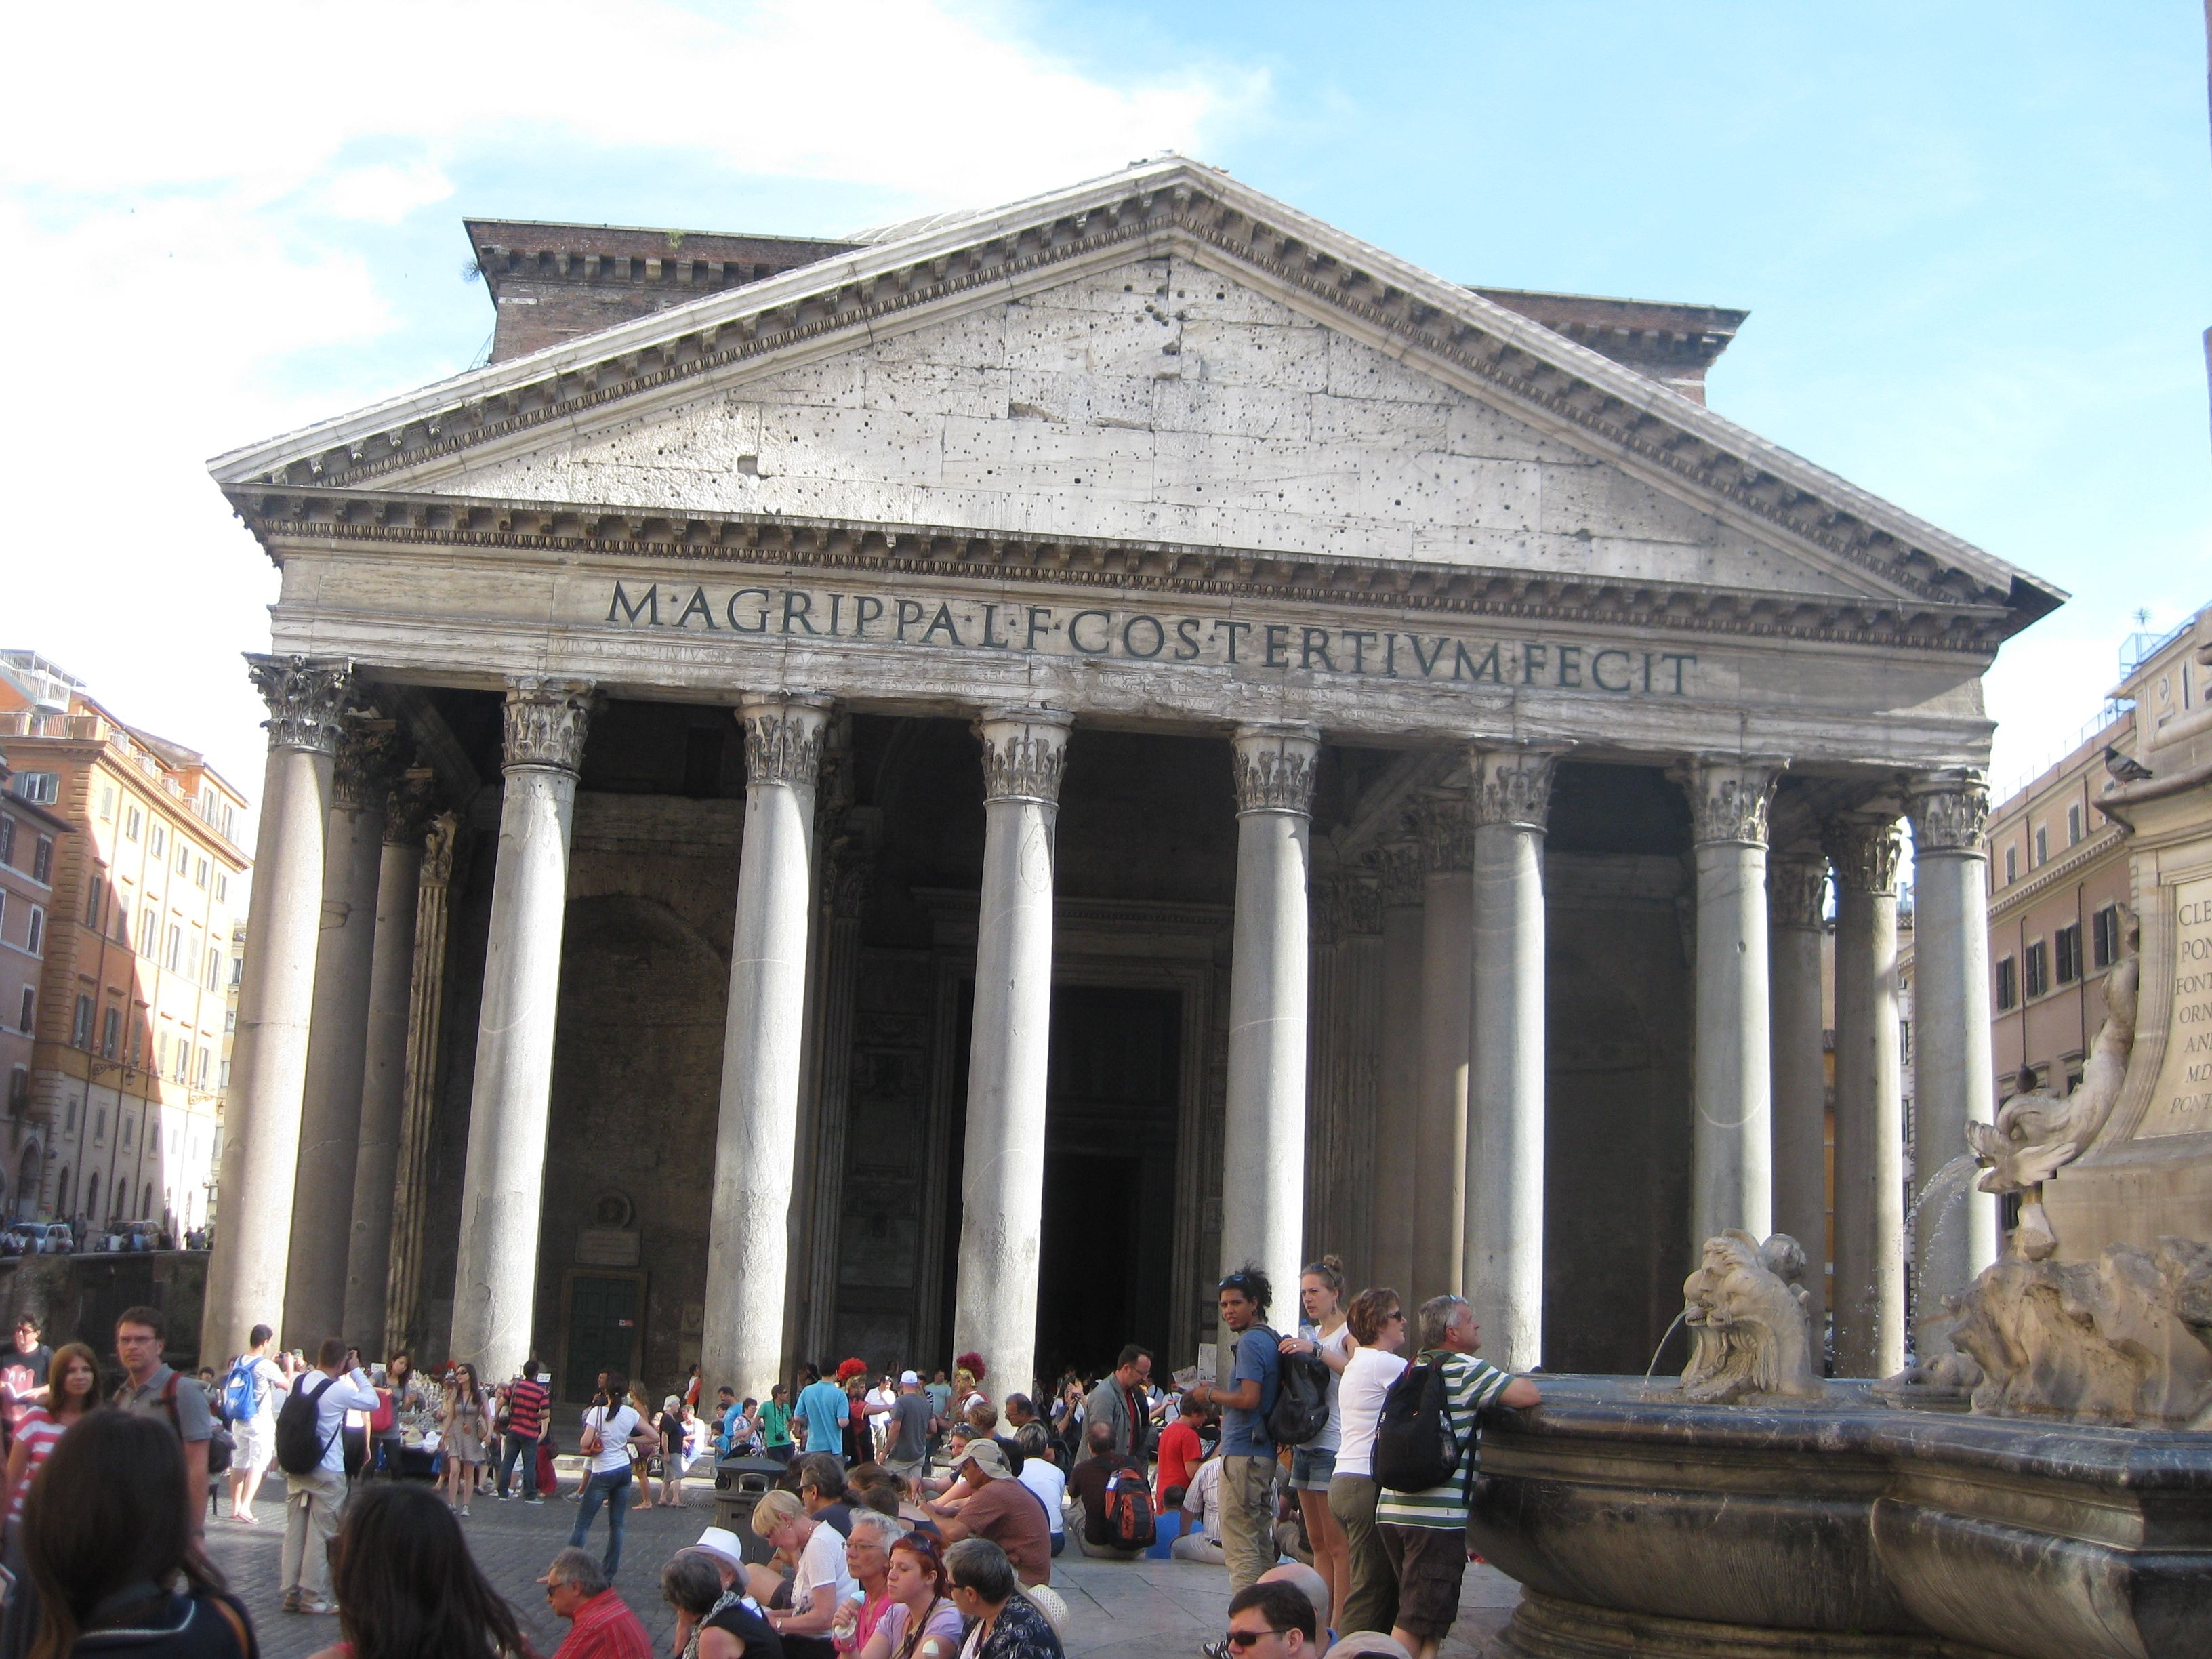 This is a photo I took when I visited the Pantheon in Rome ...